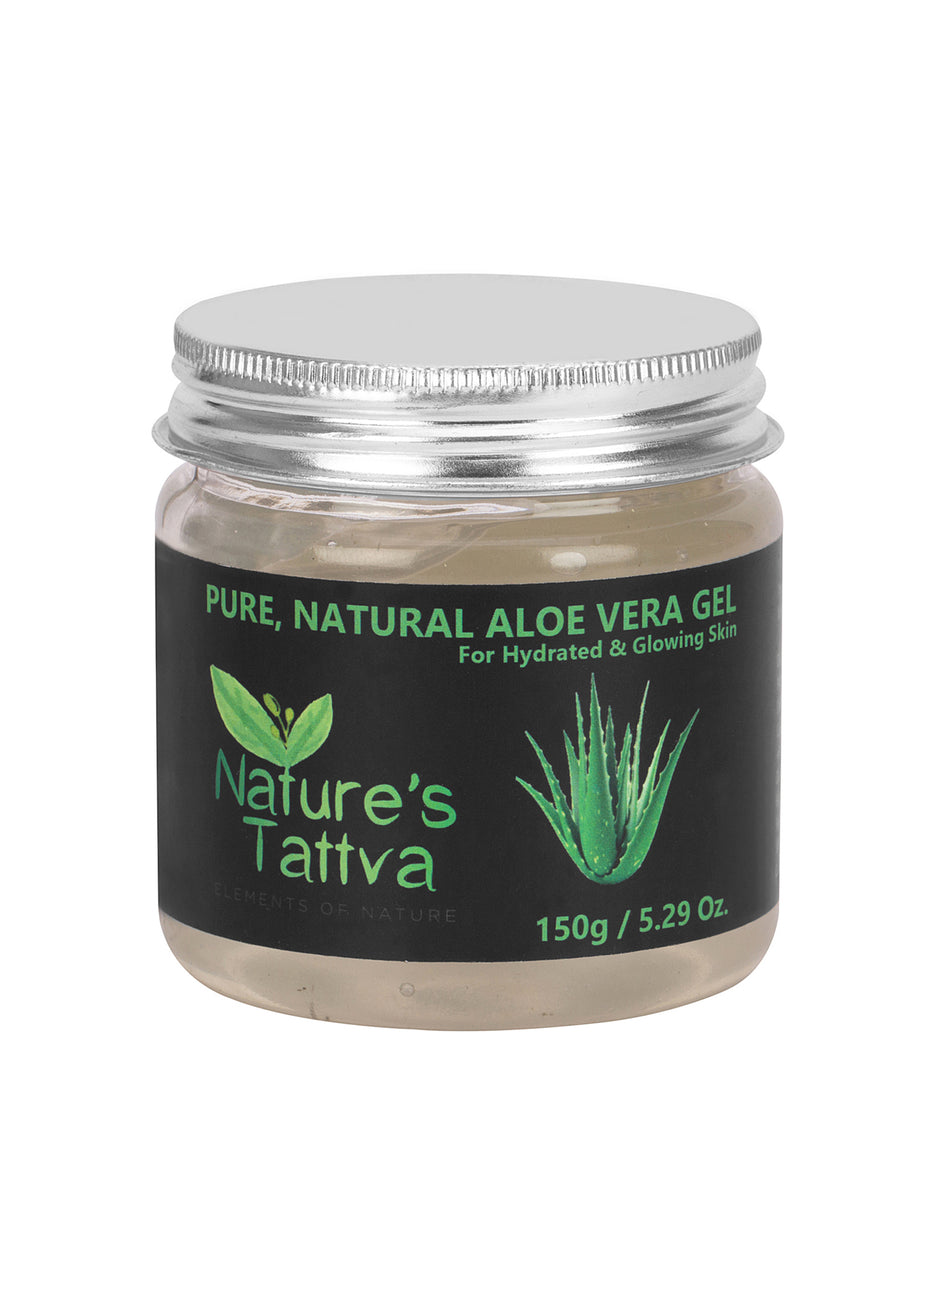 Nature's Tattva Aloe Vera Gel, Pure & Natural- 150gm, Beauty & Skin Care, Nature's Tattva, ihaat, [made_in_india], [handmade] - ihaat